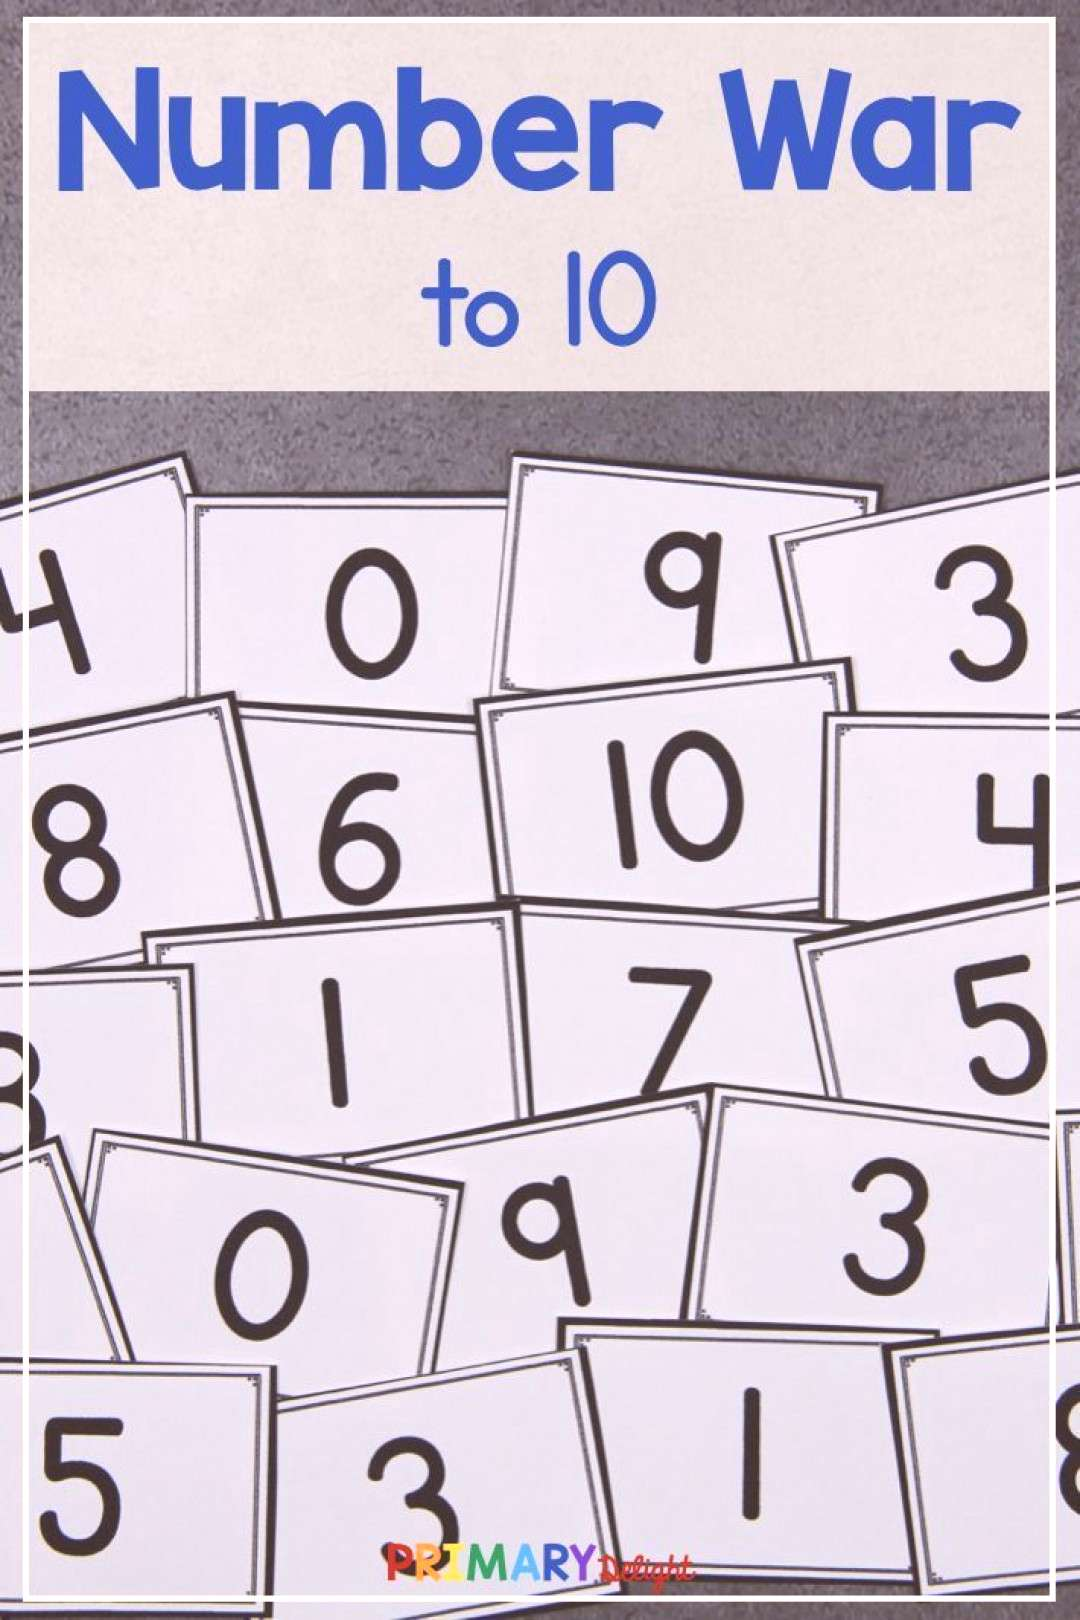 Number War to 10 (A Number Sense Game) Build number sense and practice the numbers 0-120 with this